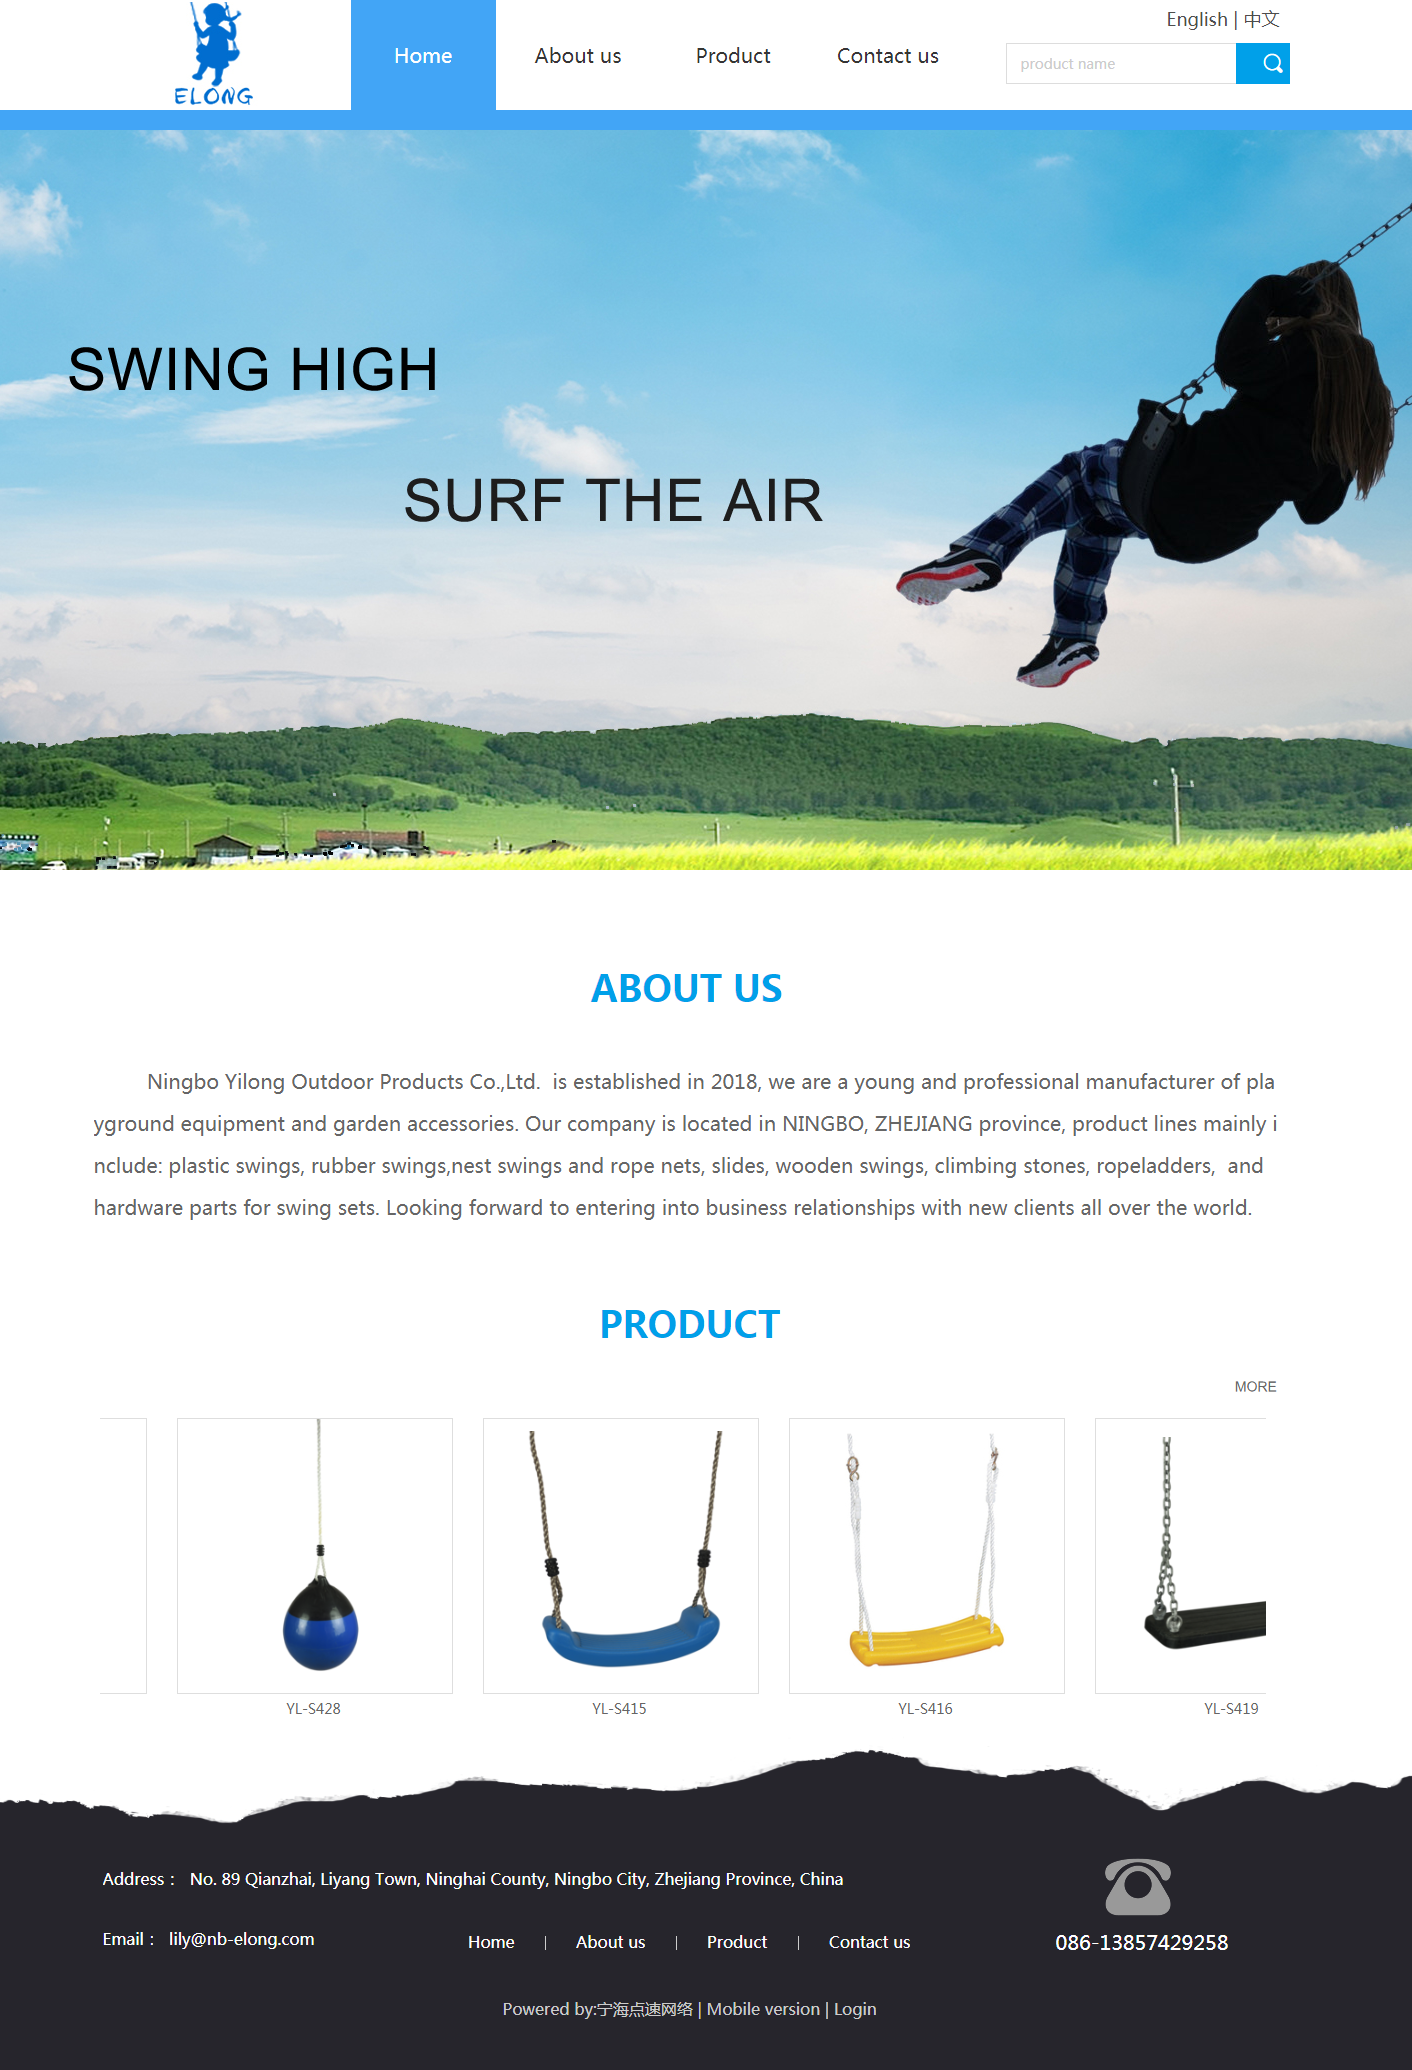 Ningbo Yilong Outdoor-swings_playground_outdoor.png